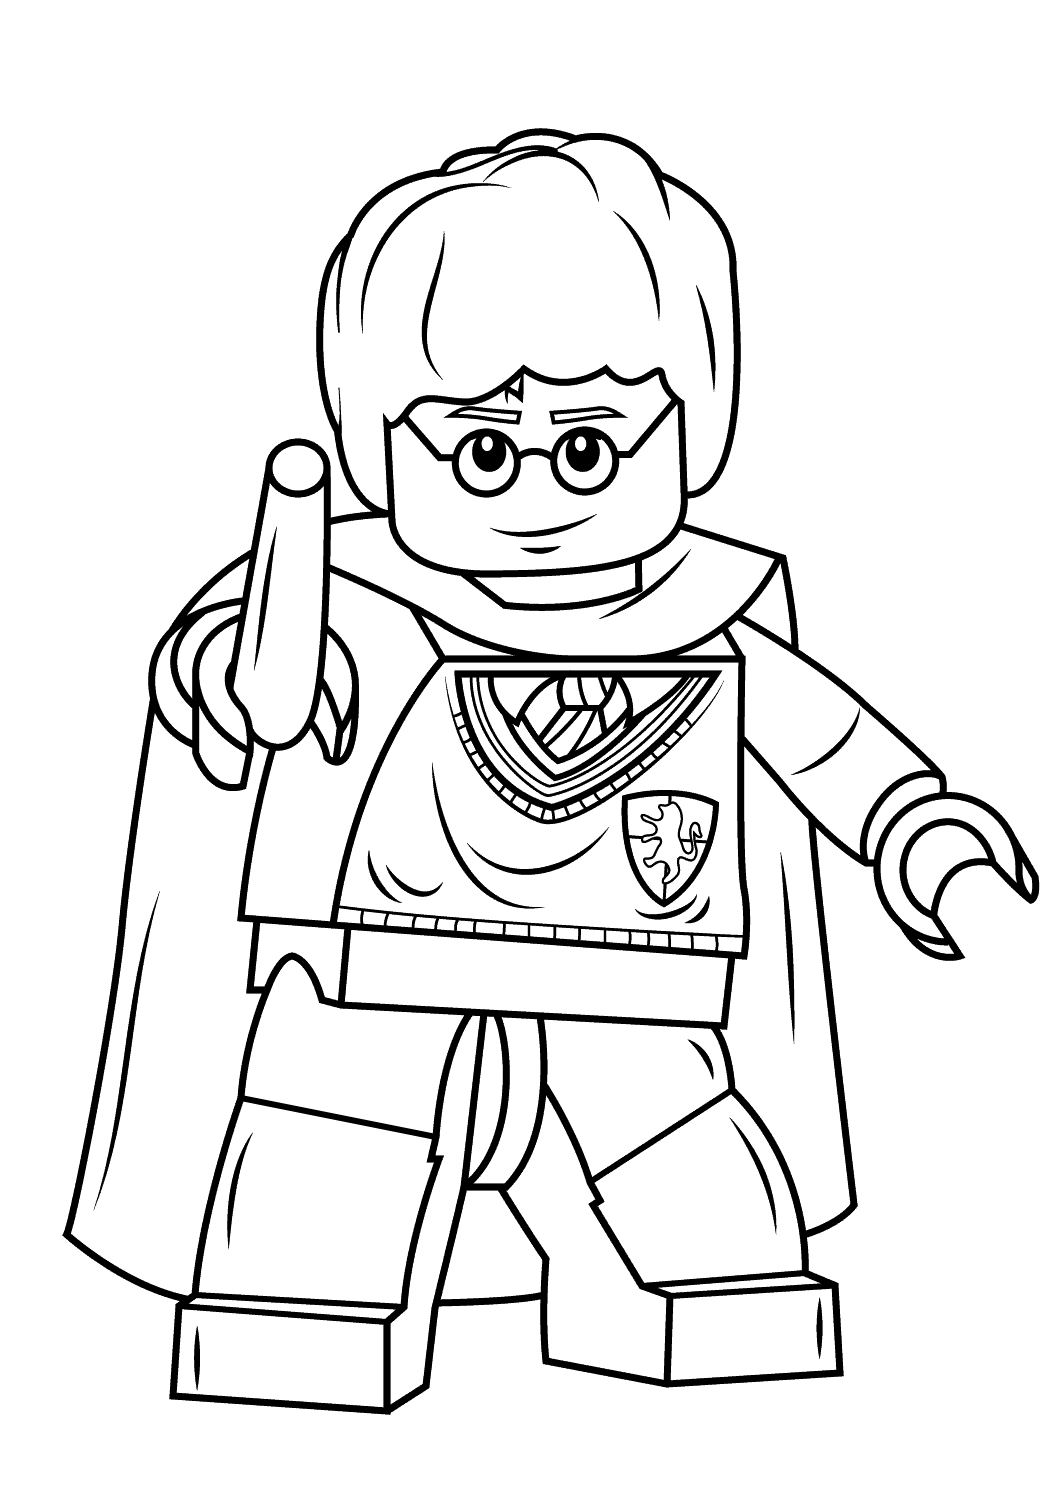 Coloriage lego harry potter imprimer - Coloriage harry potter ...